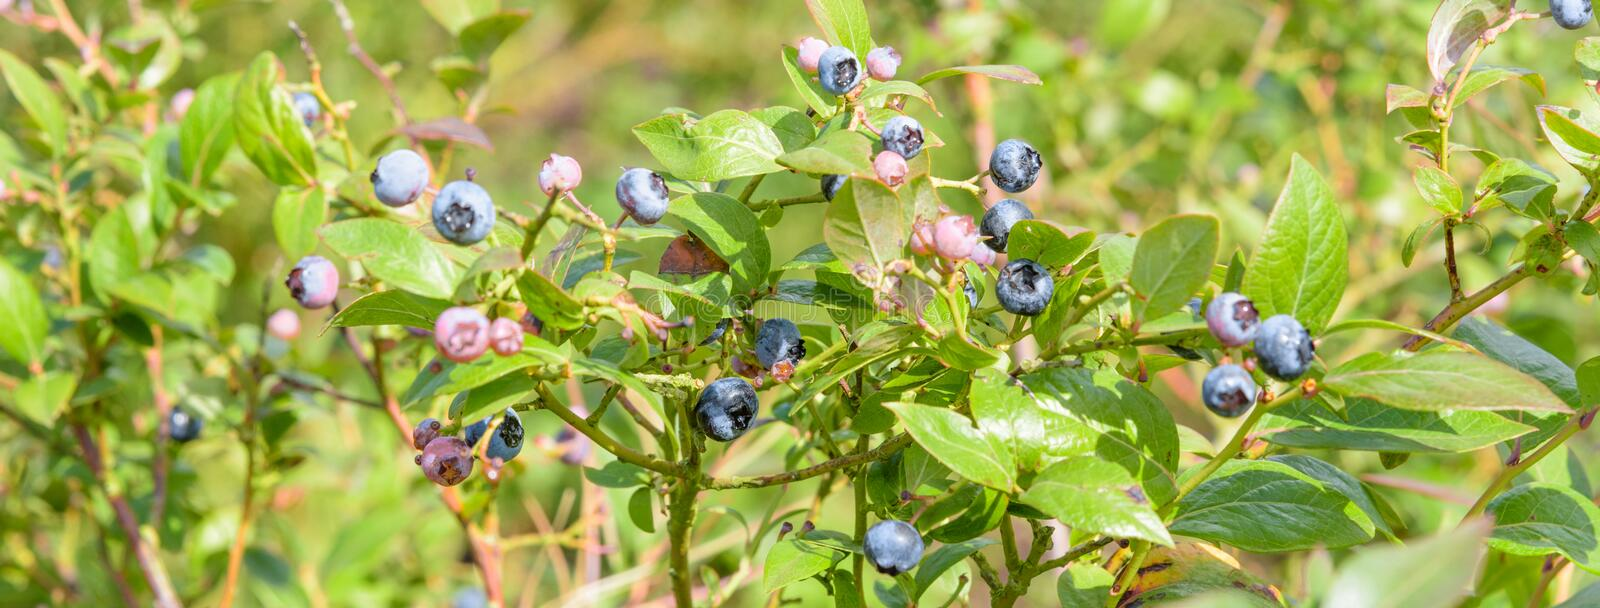 Blueberries growing in green leaves stock photo